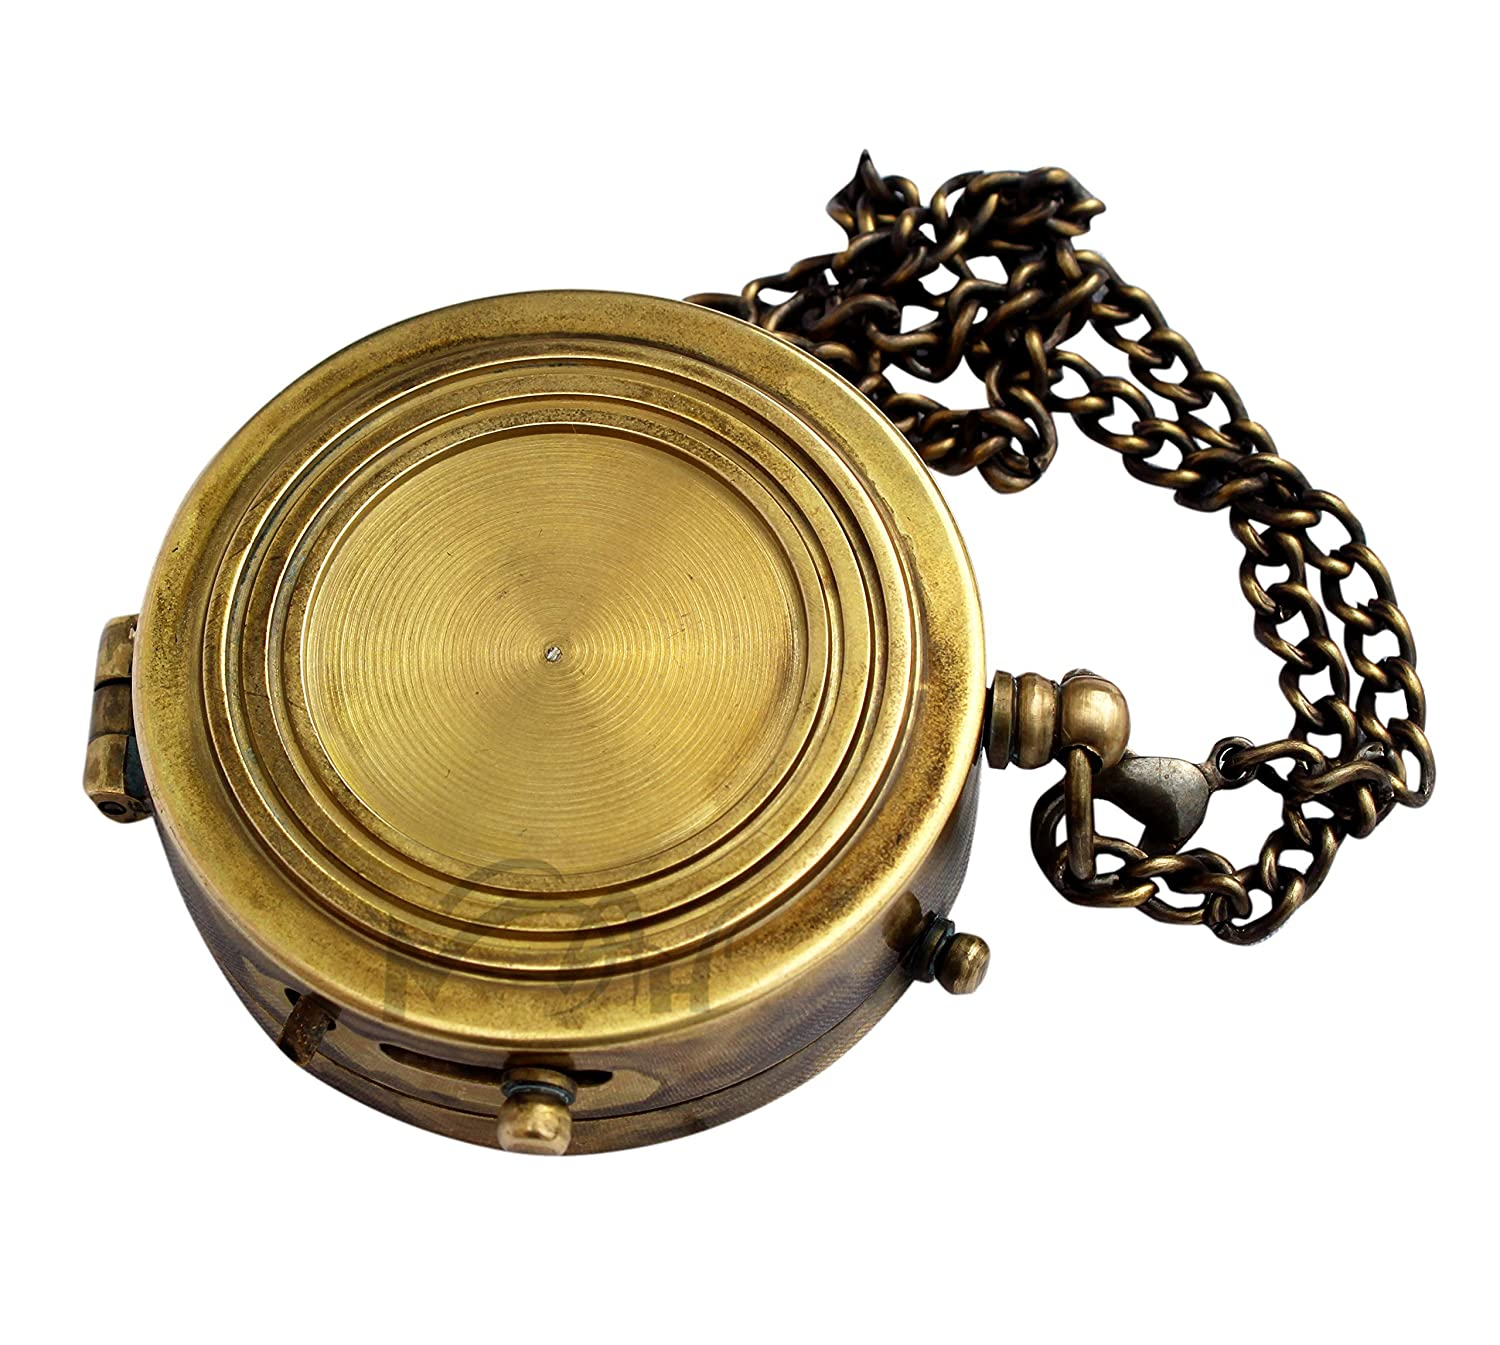 MAH Not All Who Wander are Lost Engraved Brass Compass with Leather Case C-3271 Magnetic Navigational Instrument Pirates Compass